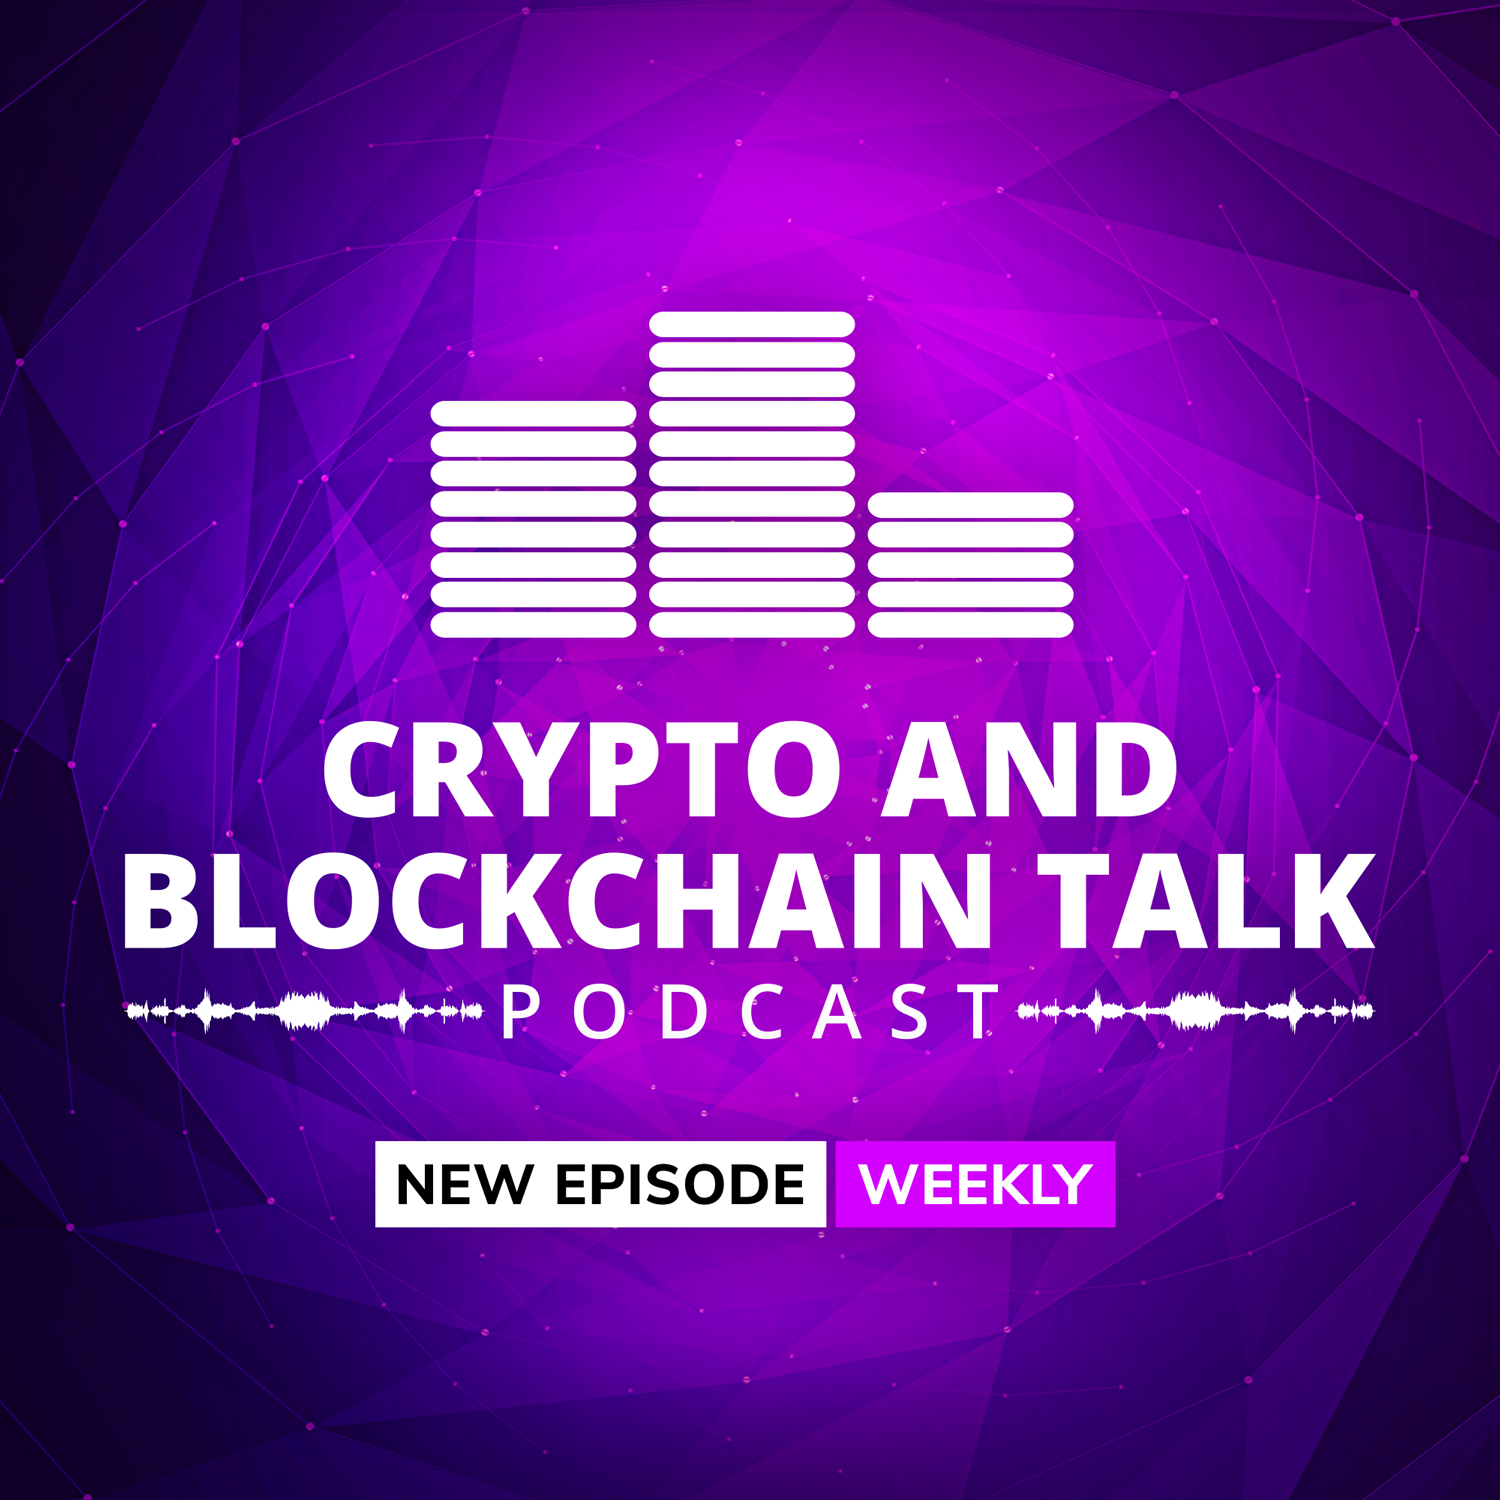 Crypto and Blockchain Talk - Making You Smarter show art